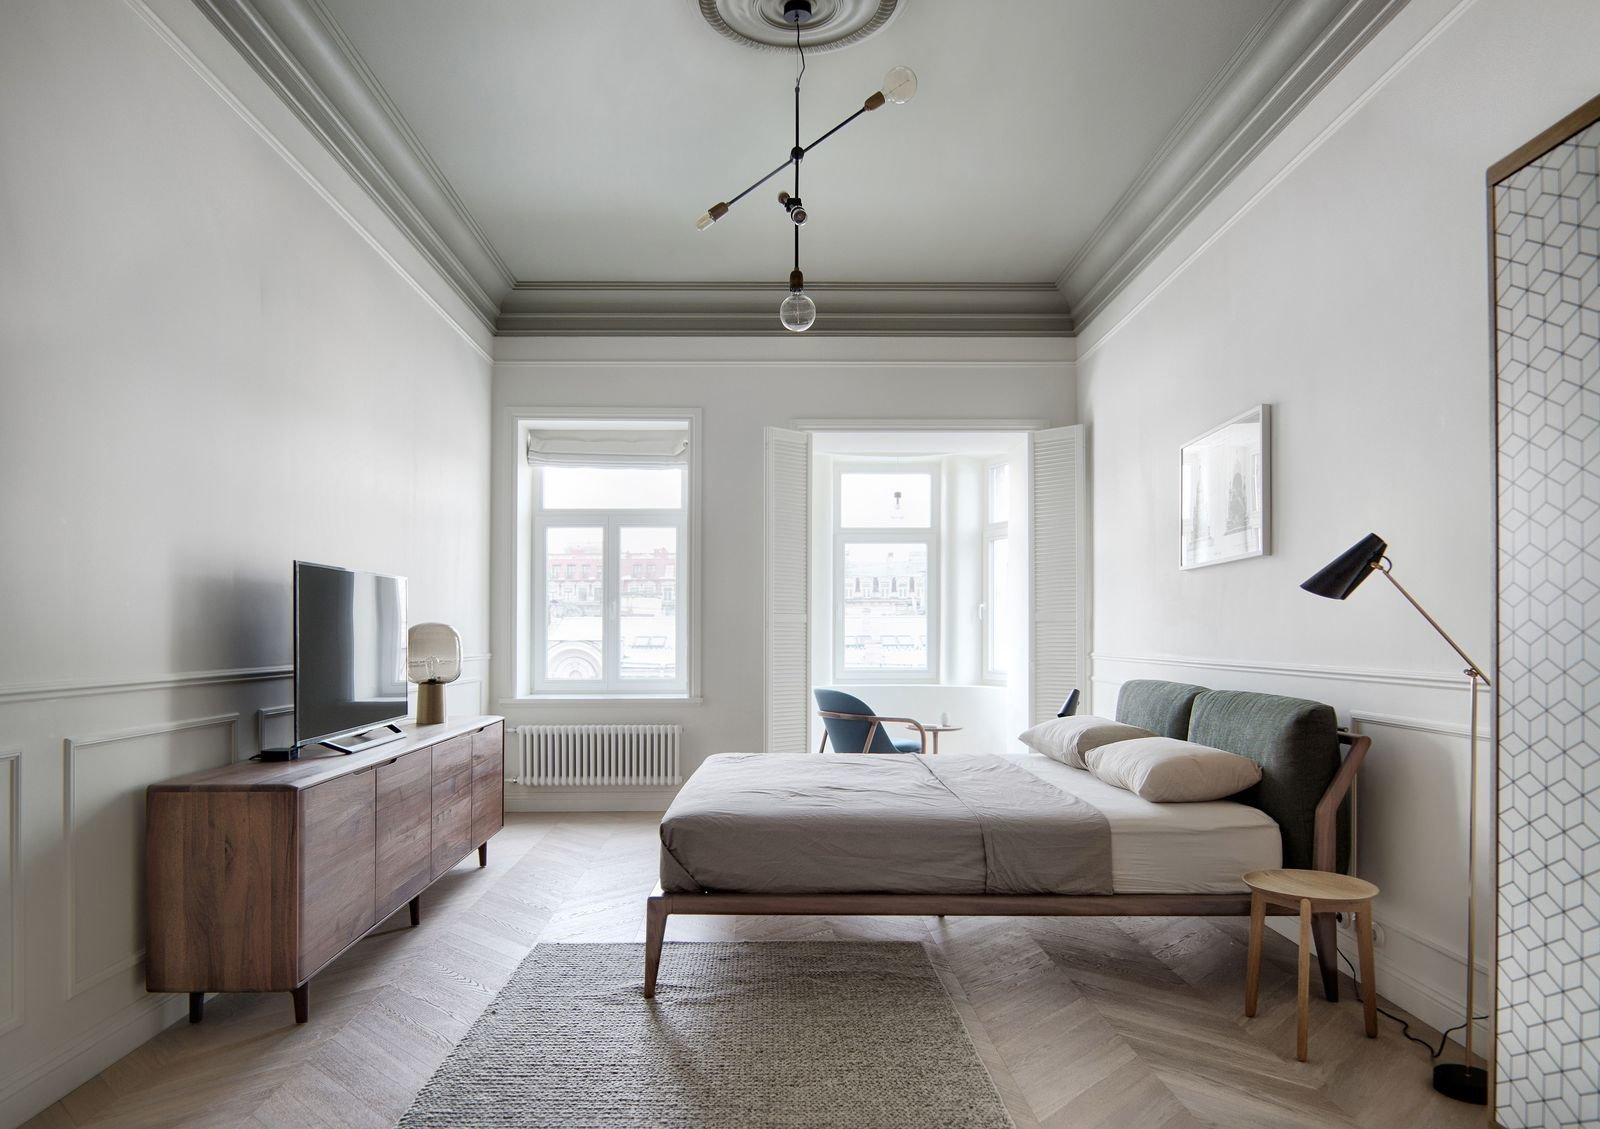 A second bedroom in INT2 architecture's Saint Petersburg apartment with center ceiling light pendant with 4 bulbs and a table and floor lamp